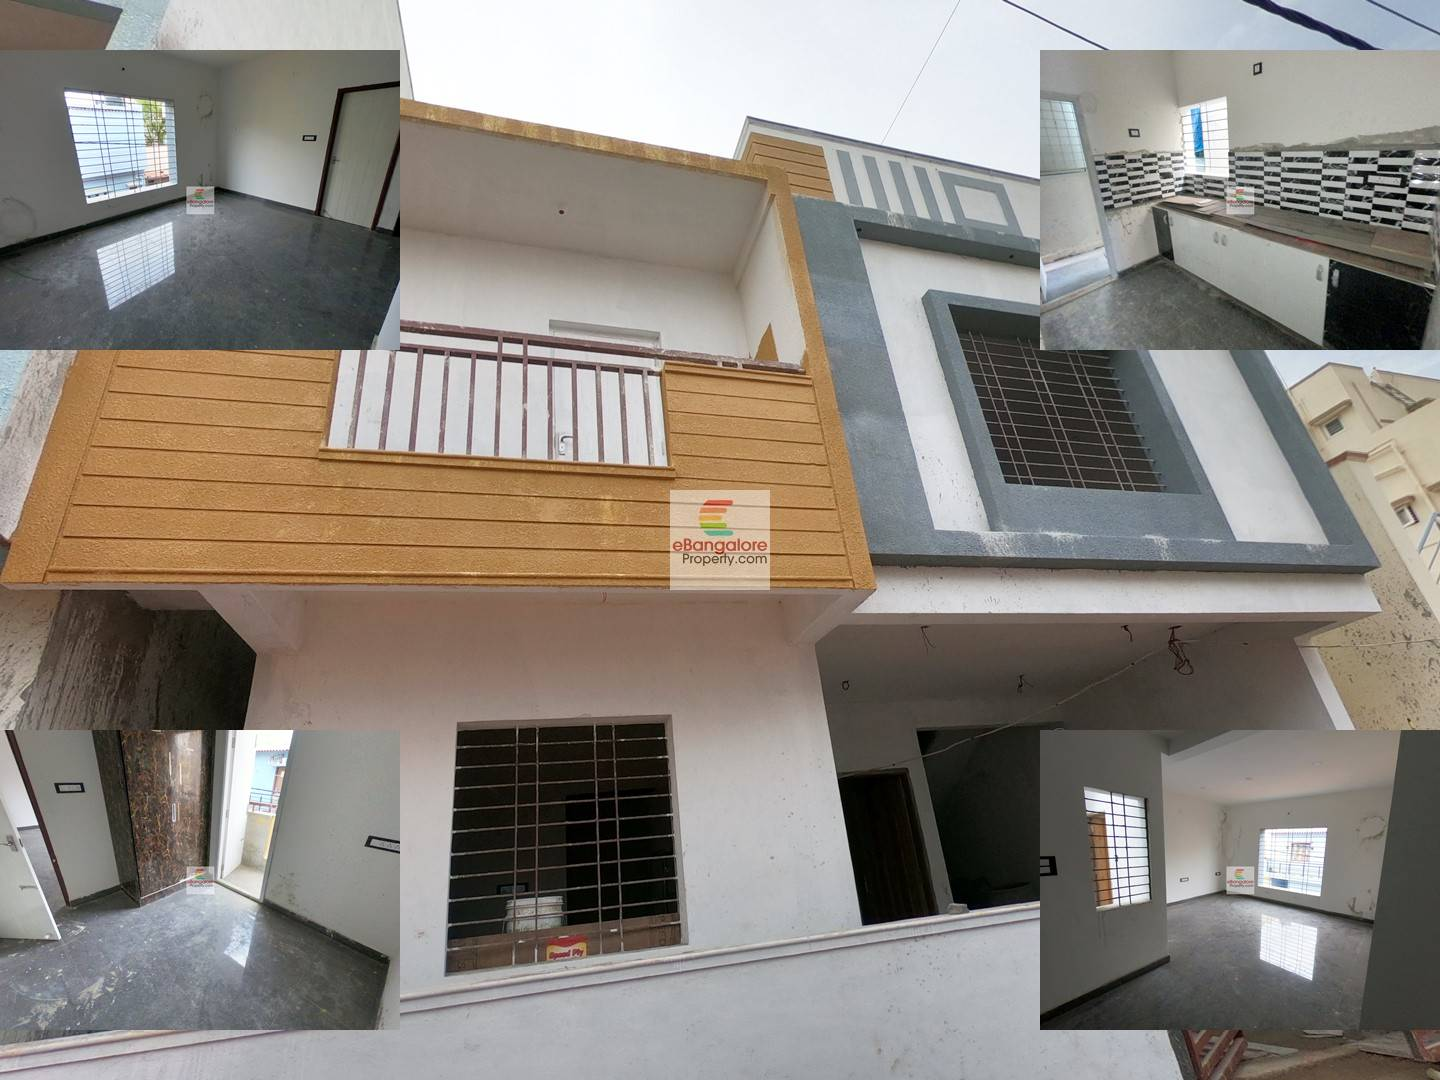 Thanisandra – 2 Unit Building for Sale on 25×42 Site – Semifurn 2BHK+3BHK Houses